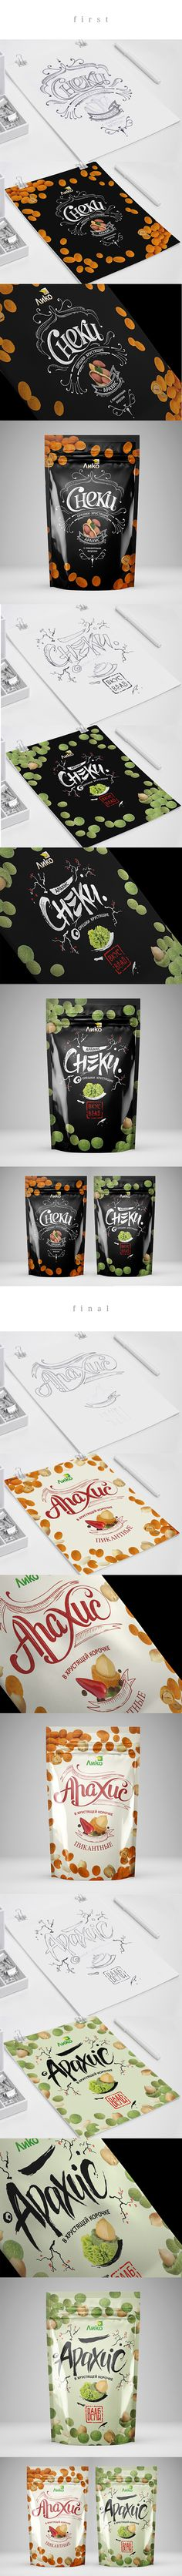 Sneck Liko by Na Toon, Krasnodar, Russian Federation on Behance curated by Packaging Diva PD. love the story behind the composition of this candied nuts (I think) packaging by Wow Design don't you?